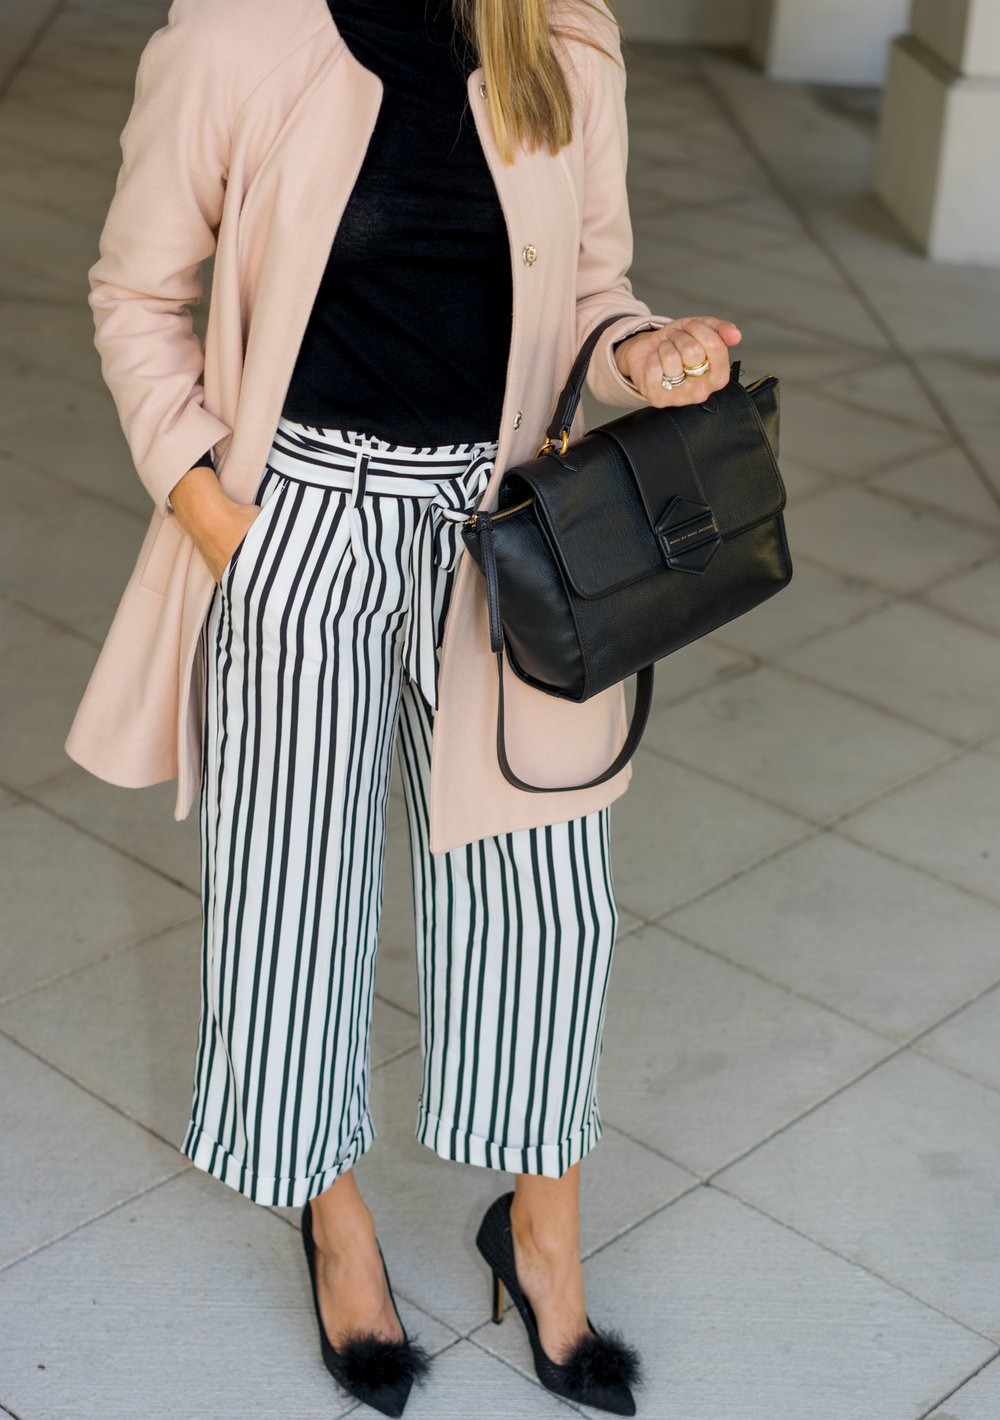 Pink coat, striped pants